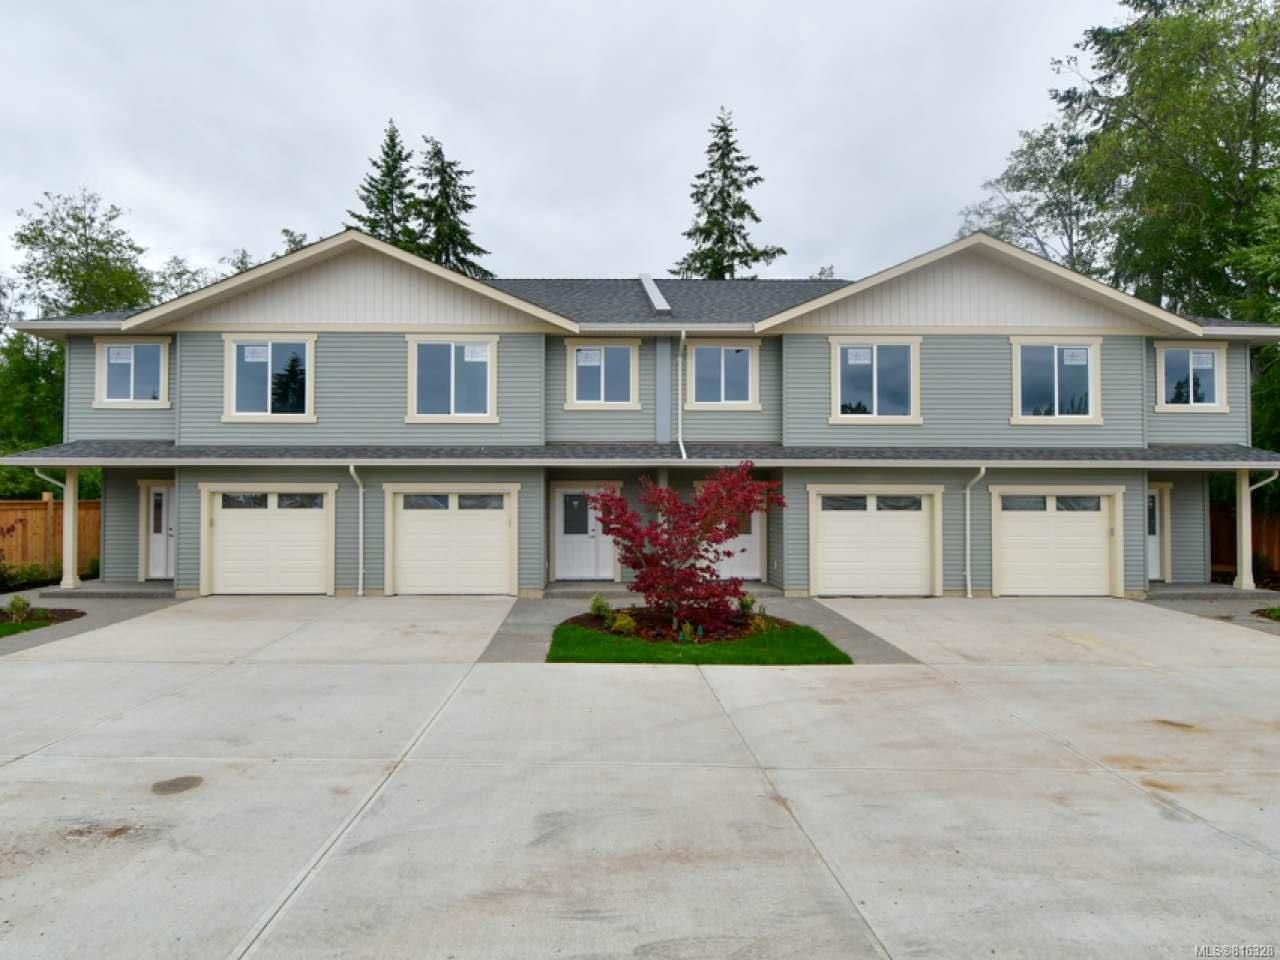 Main Photo: C 336 Petersen Rd in CAMPBELL RIVER: CR Campbell River West Row/Townhouse for sale (Campbell River)  : MLS®# 816328